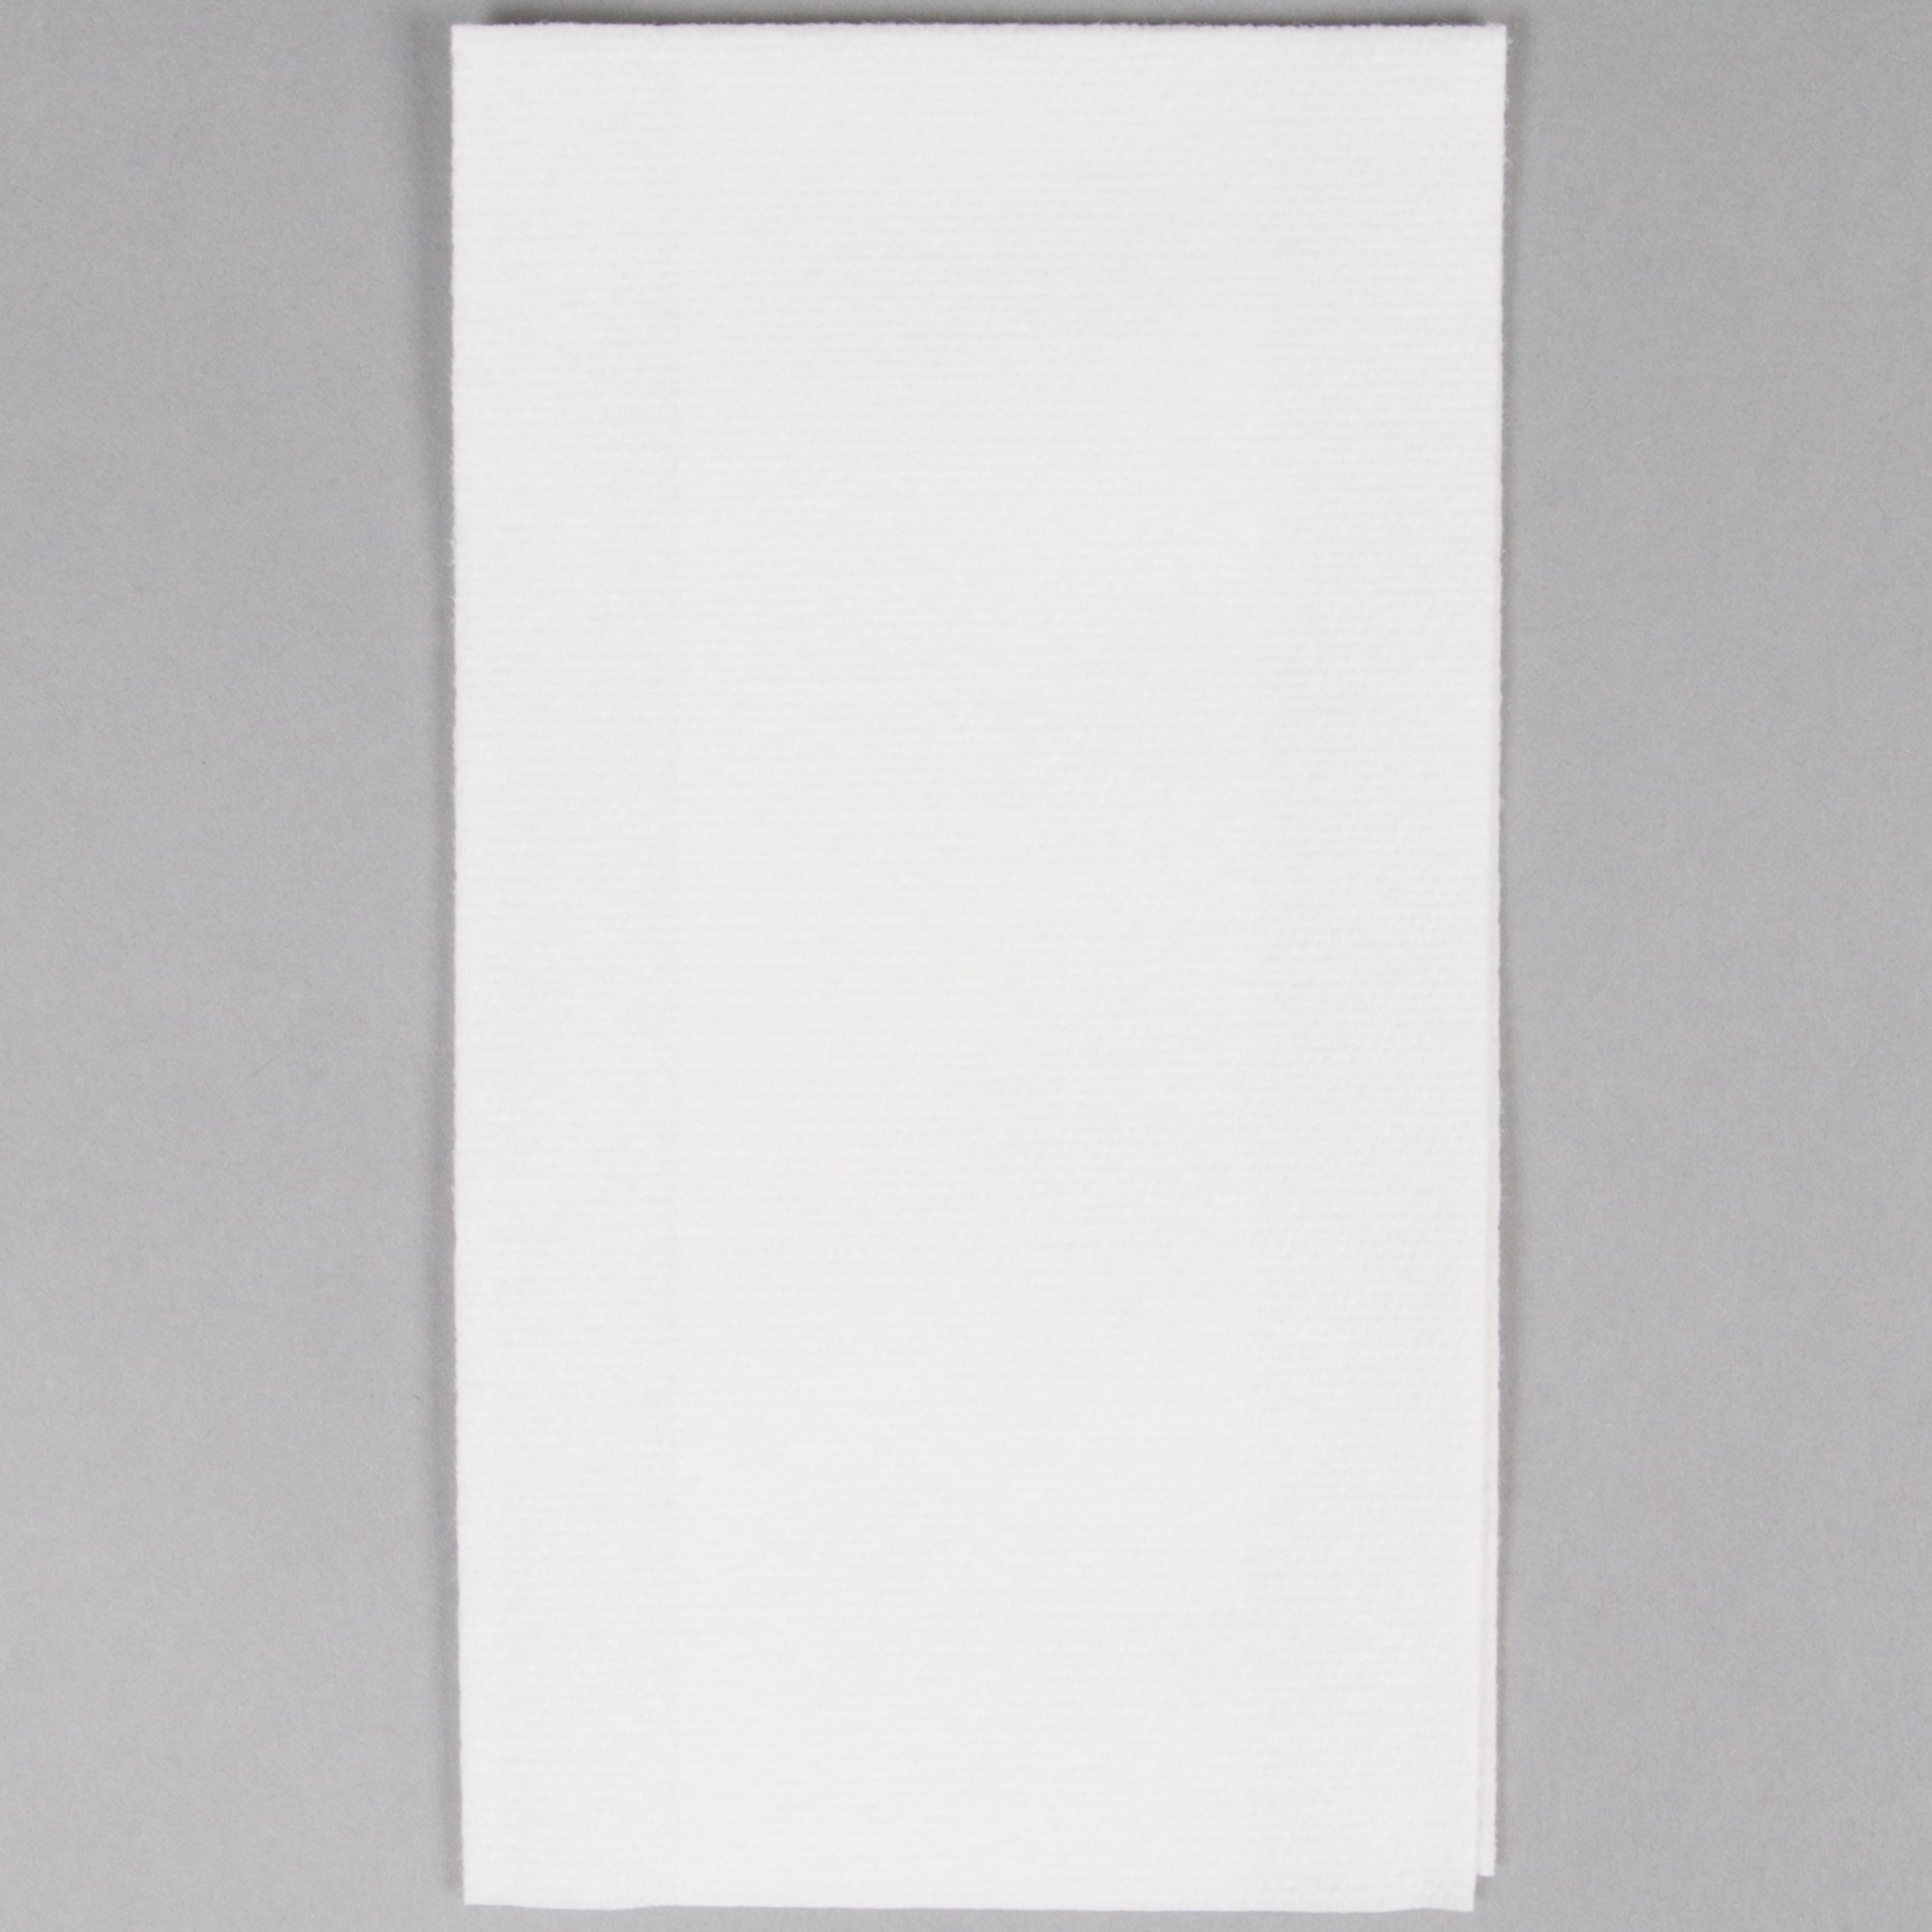 Hoffmaster 856460 Linen-Like Select 12'' x 17'' White 1/6 Fold Guest Towel in Dispenser Box - 500/Case